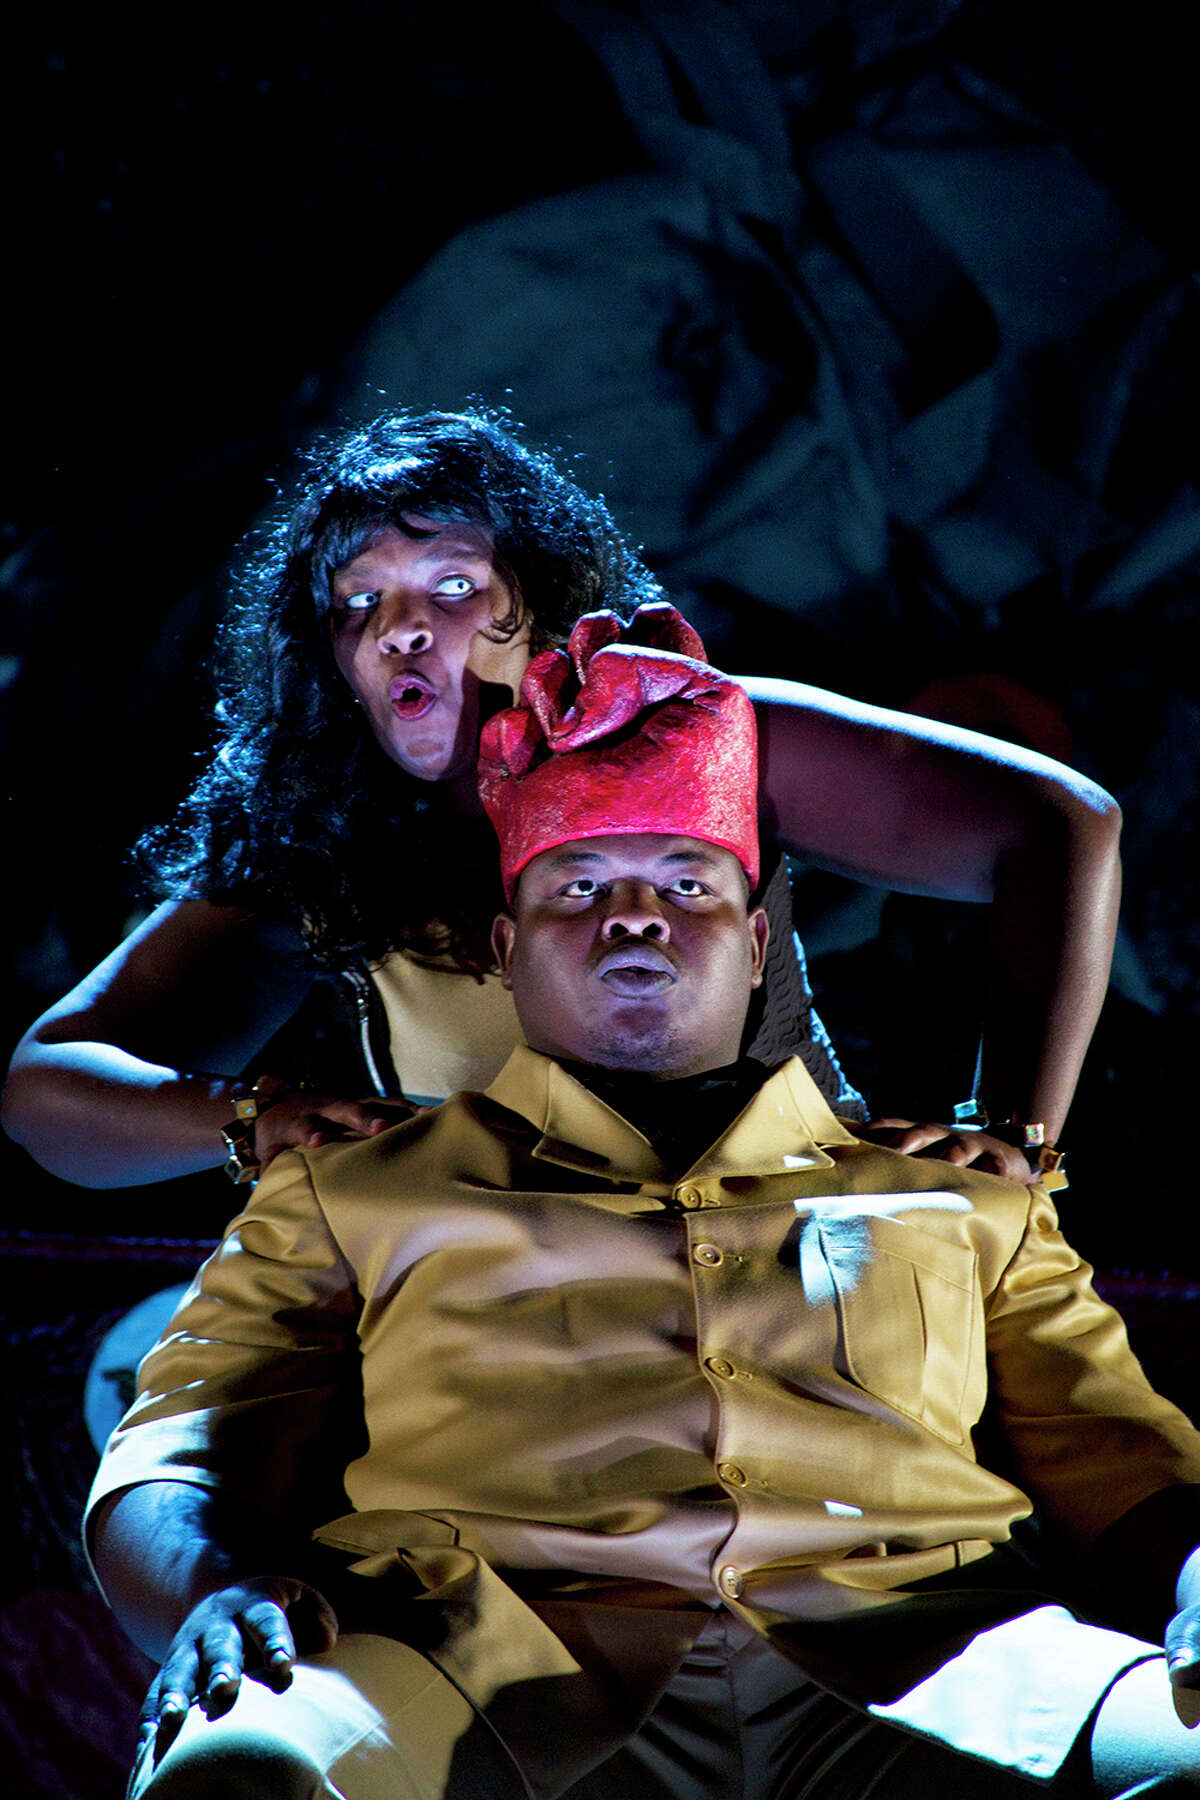 South African opera based on Verdi's